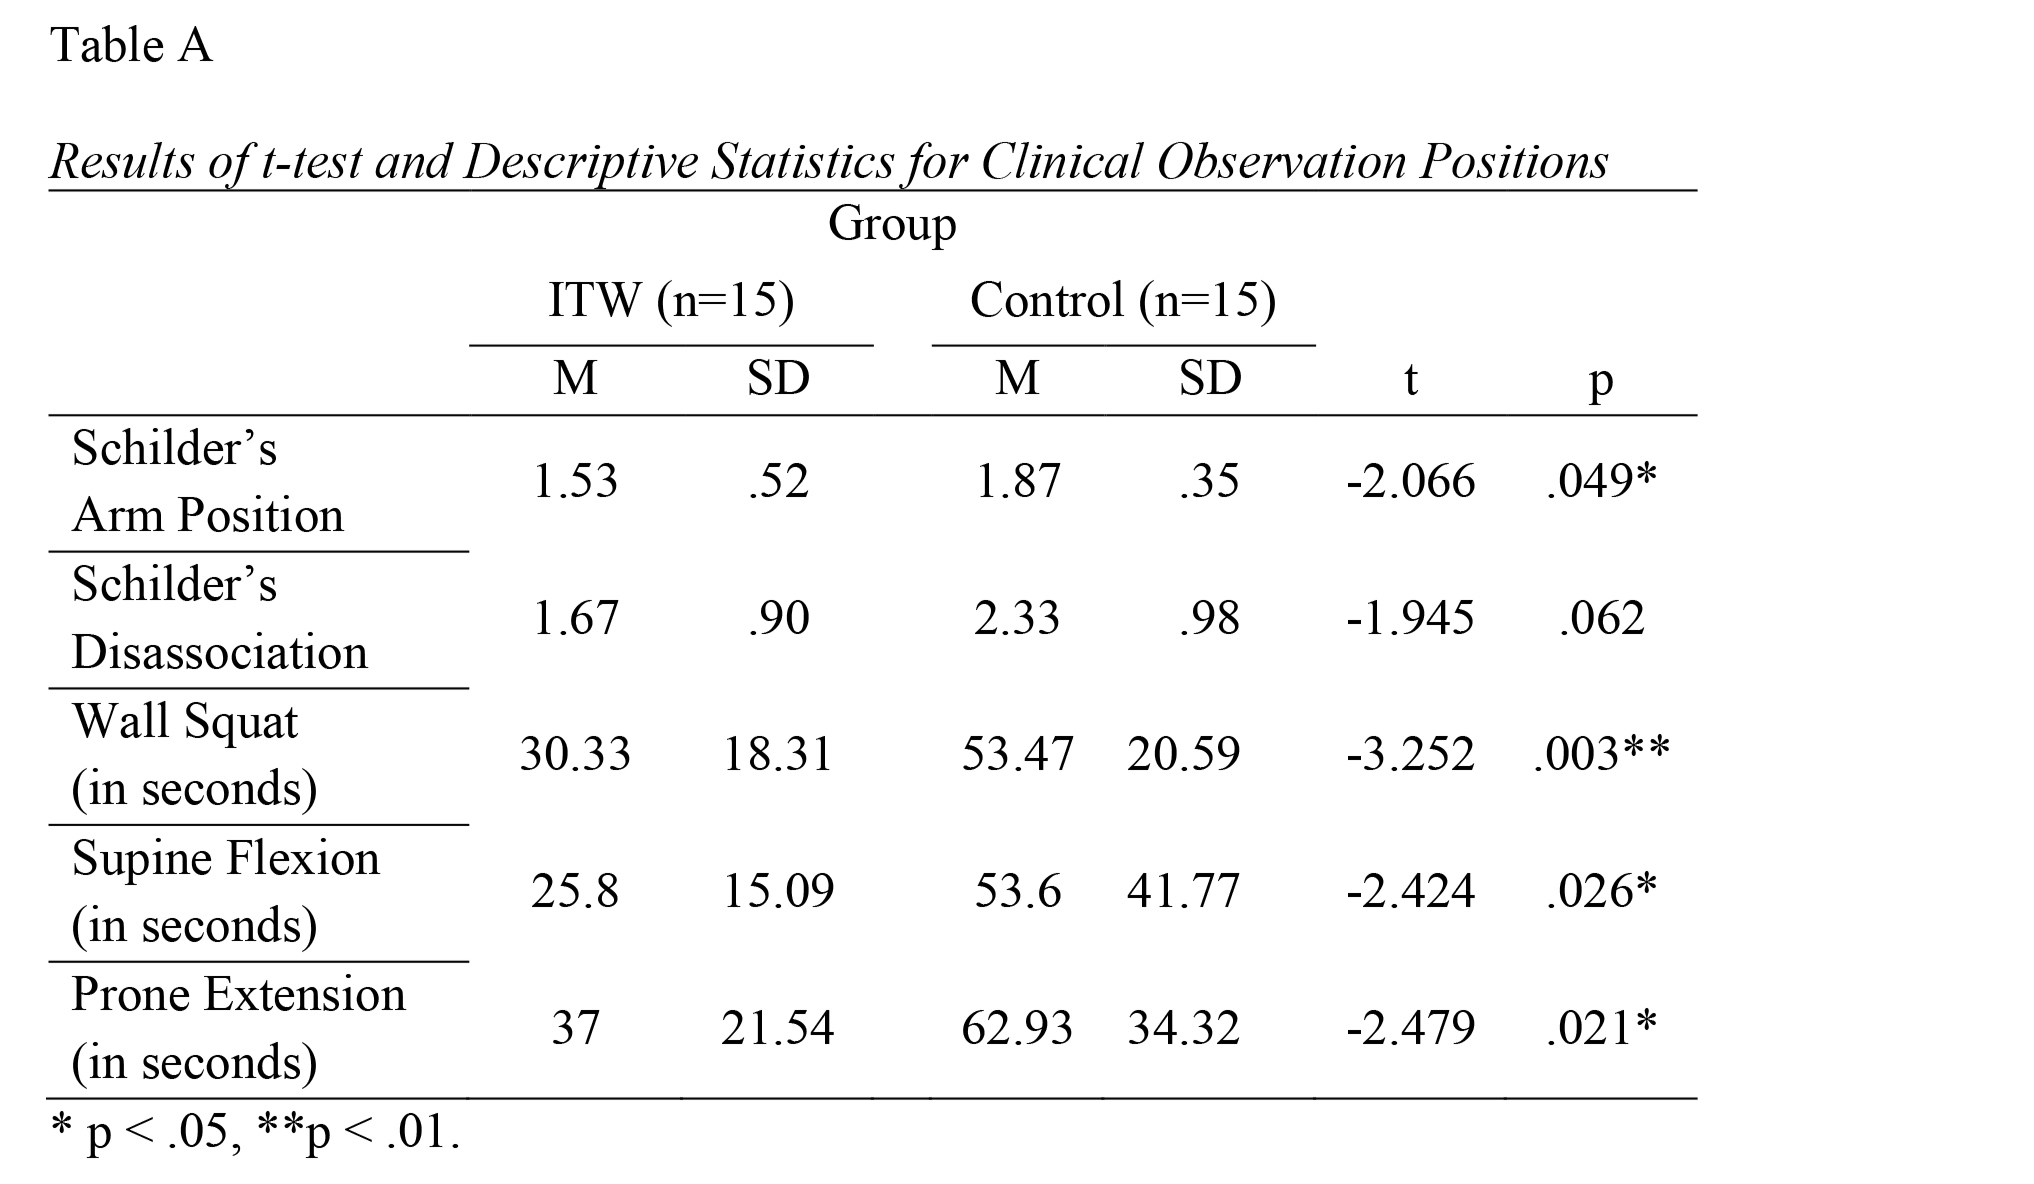 Results of t-test and Descriptive Statistics for Clinical Observation Positions